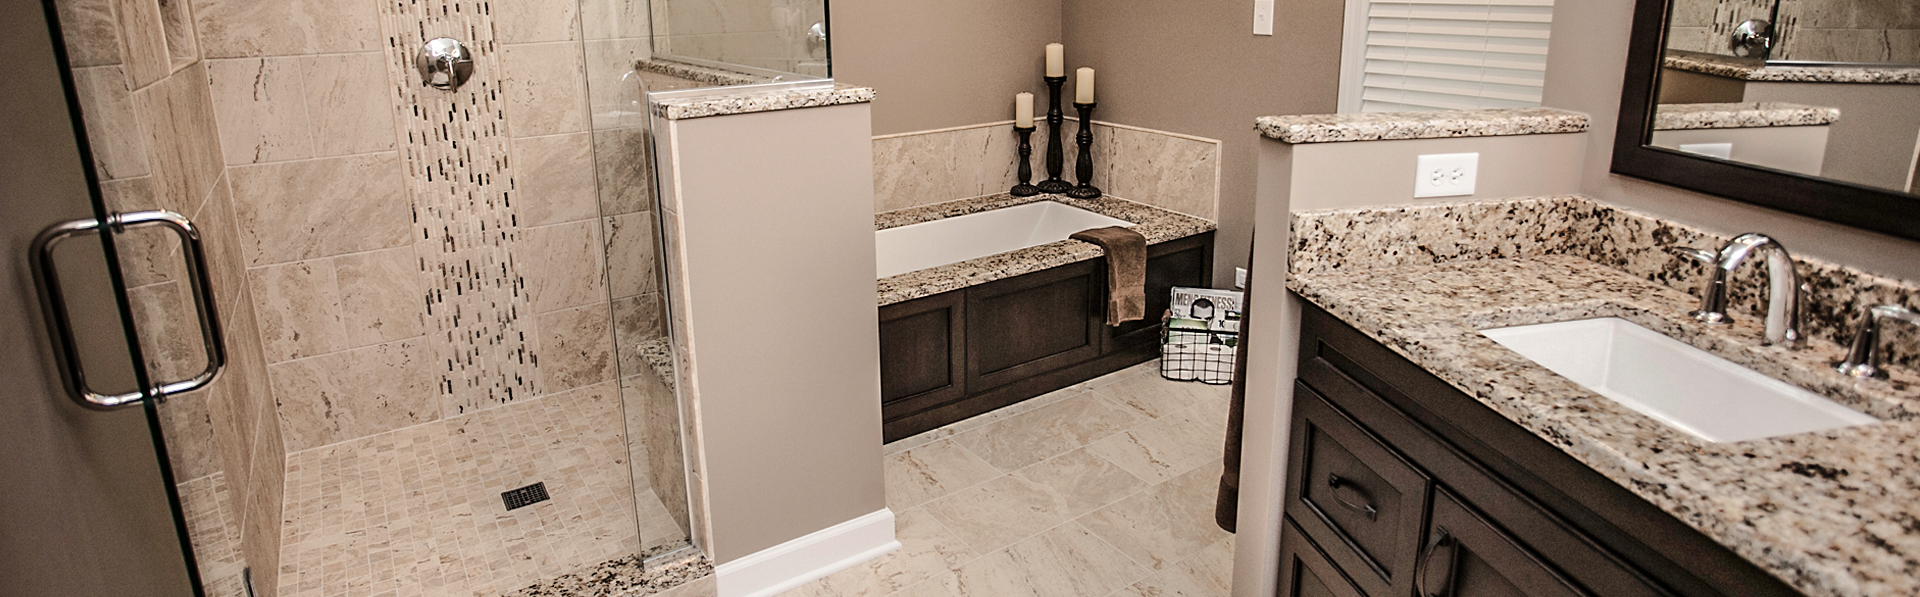 Custom Bathroom Vanities Naperville kitchen design & bathroom remodeling naperville, aurora, wheaton